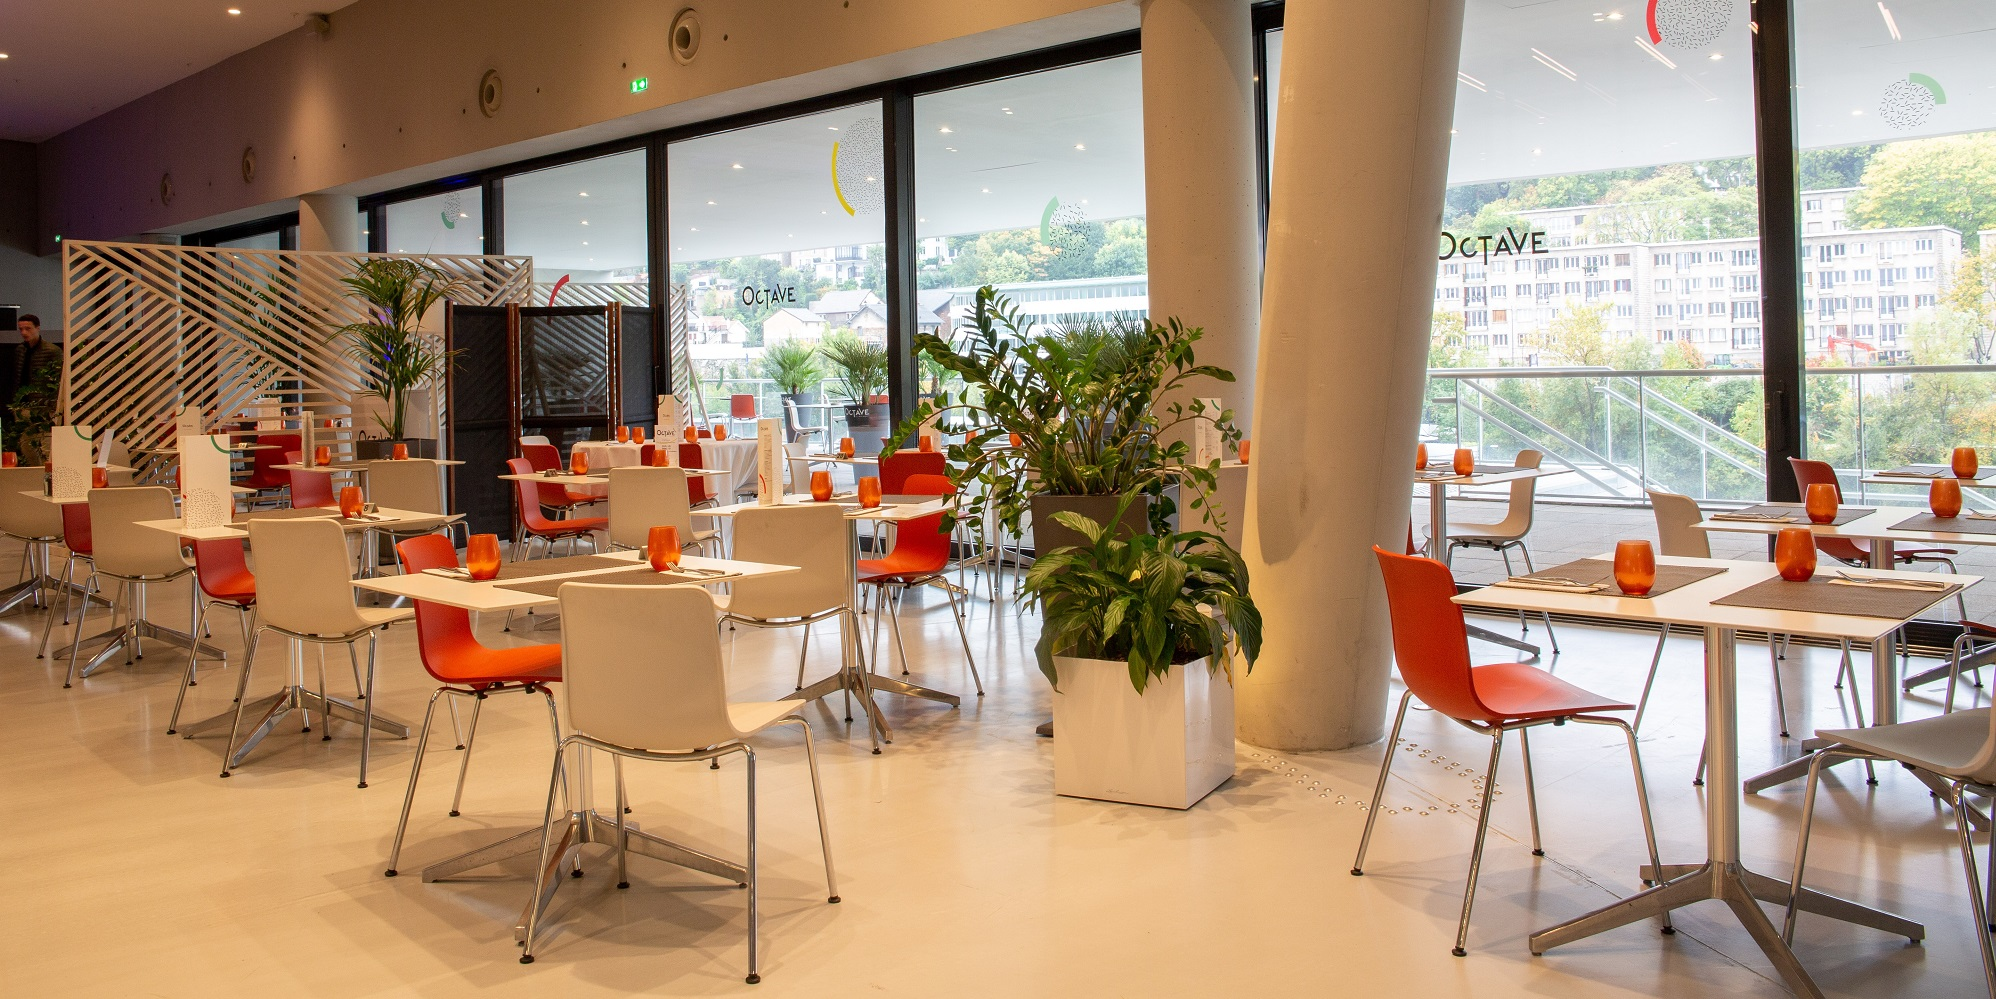 Brunch Restaurant Octave (92100 Boulogne Billancourt)